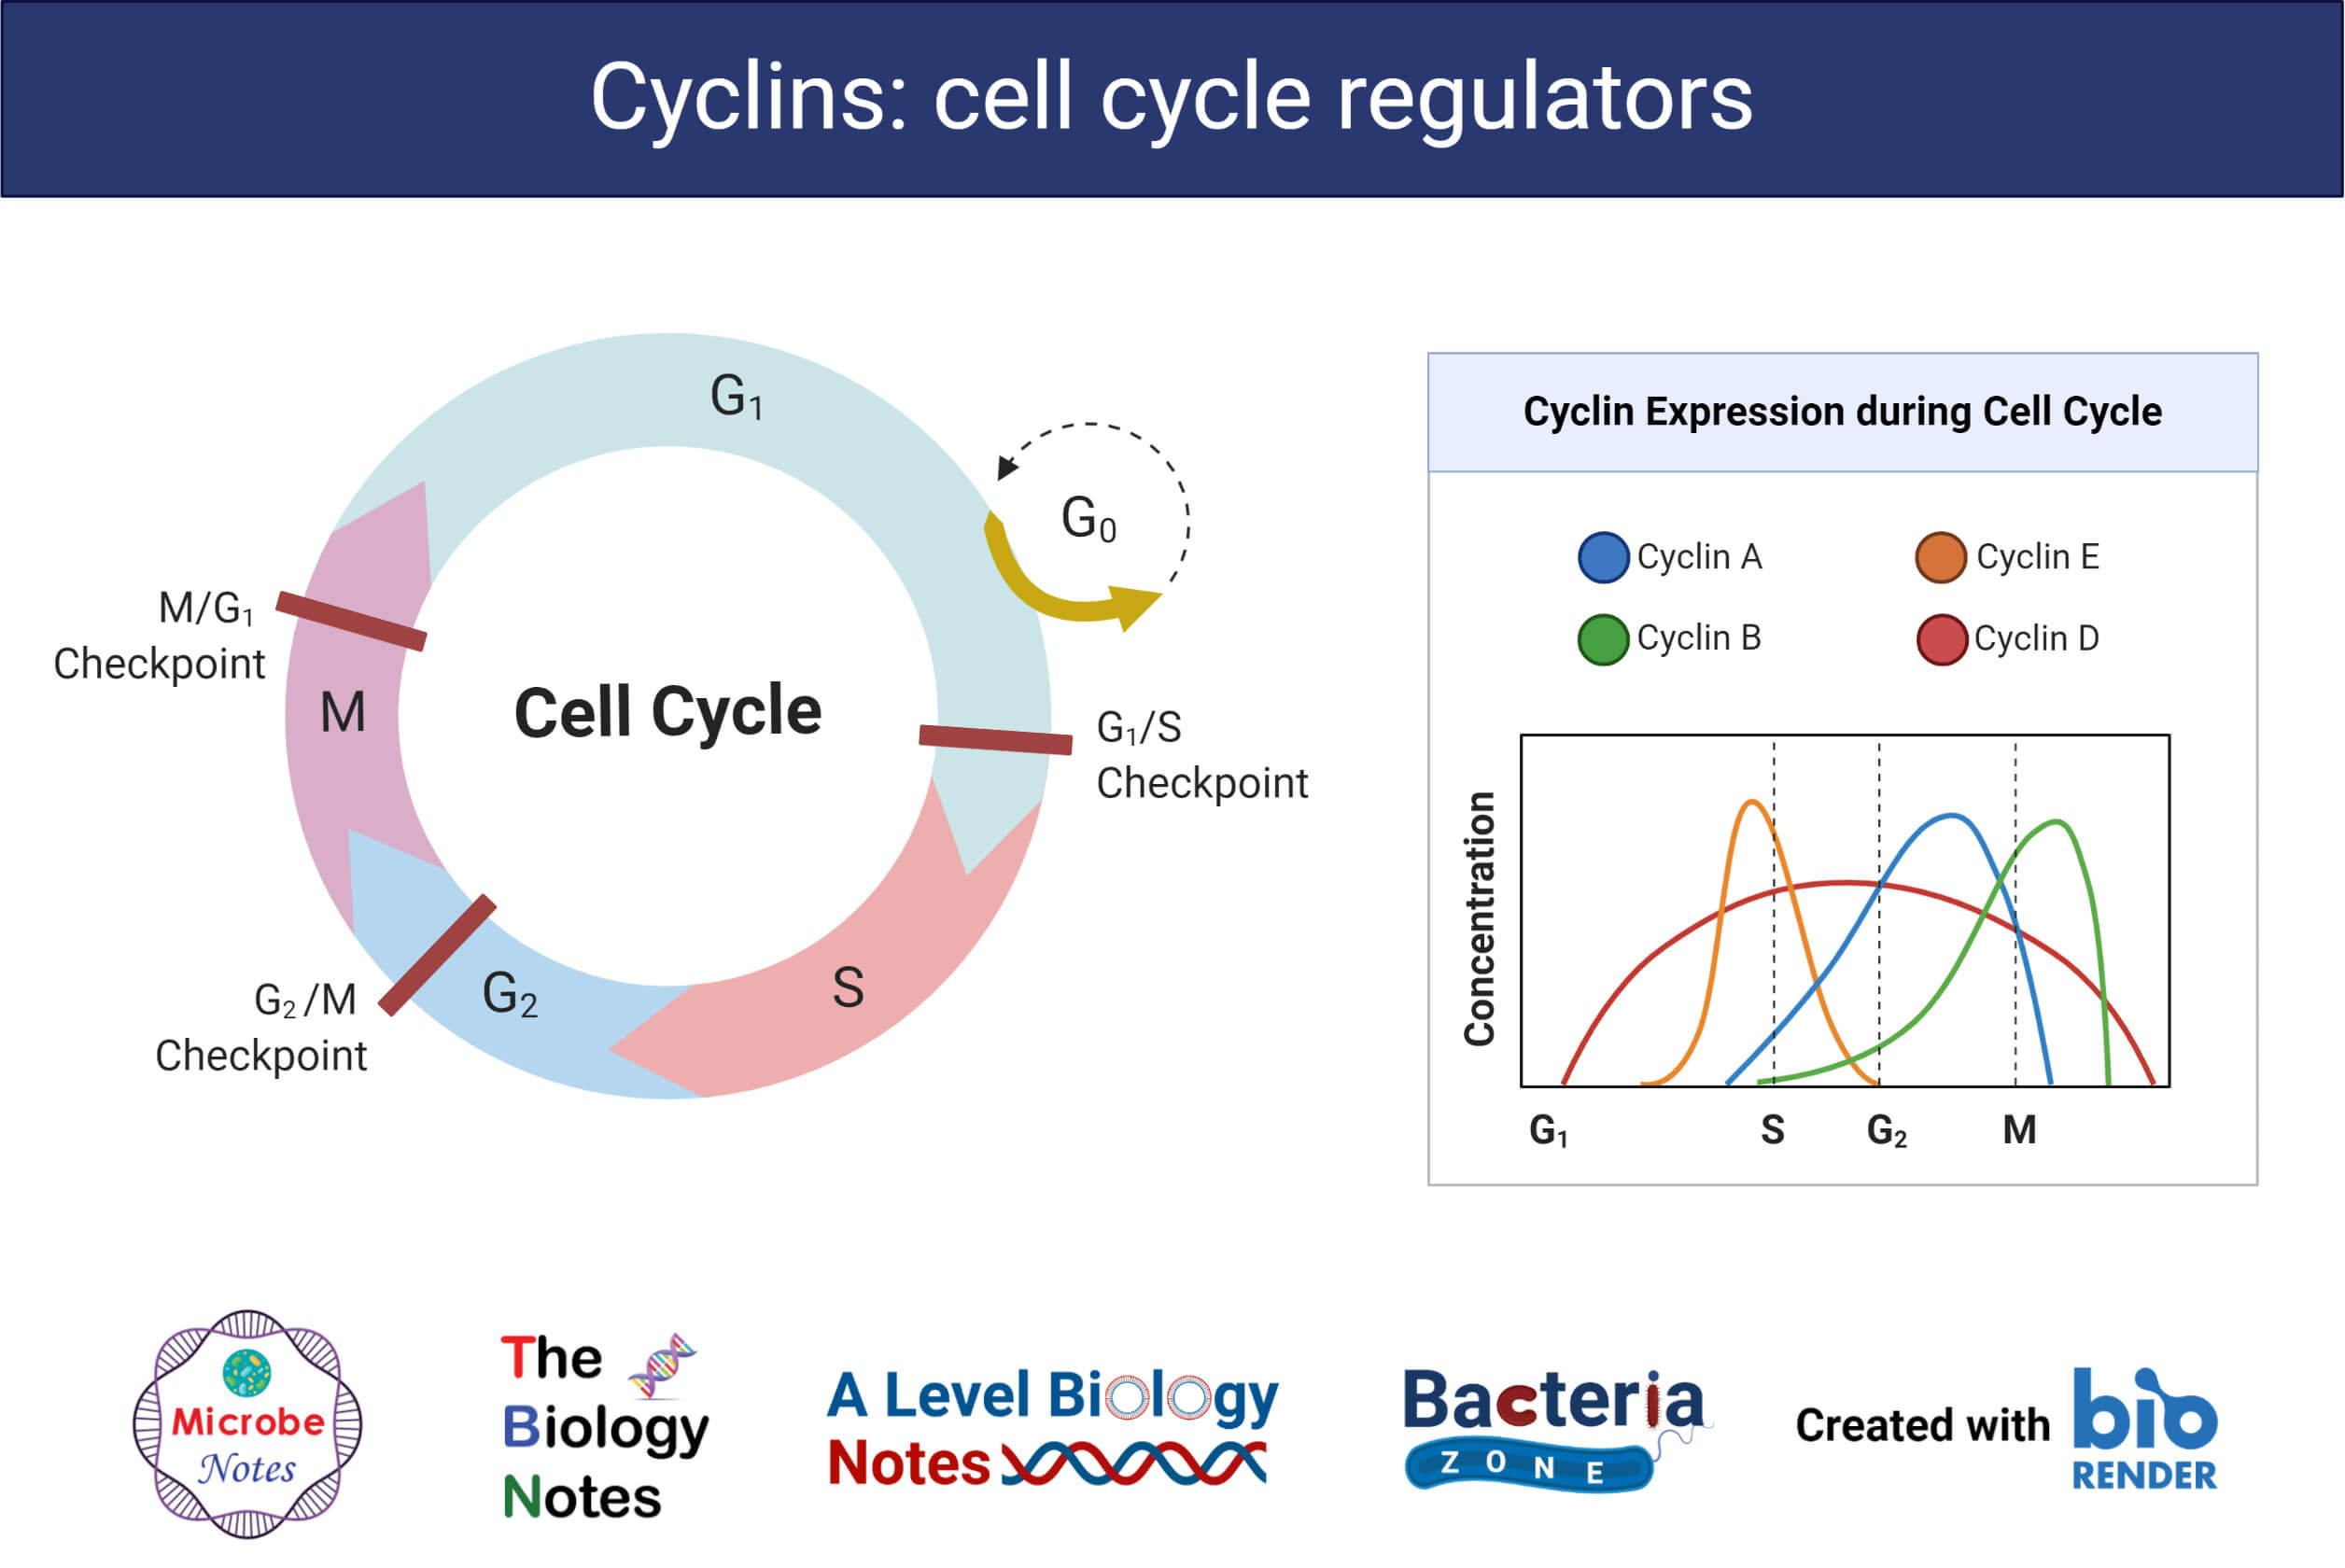 Cyclins- Cell Cycle Regulators